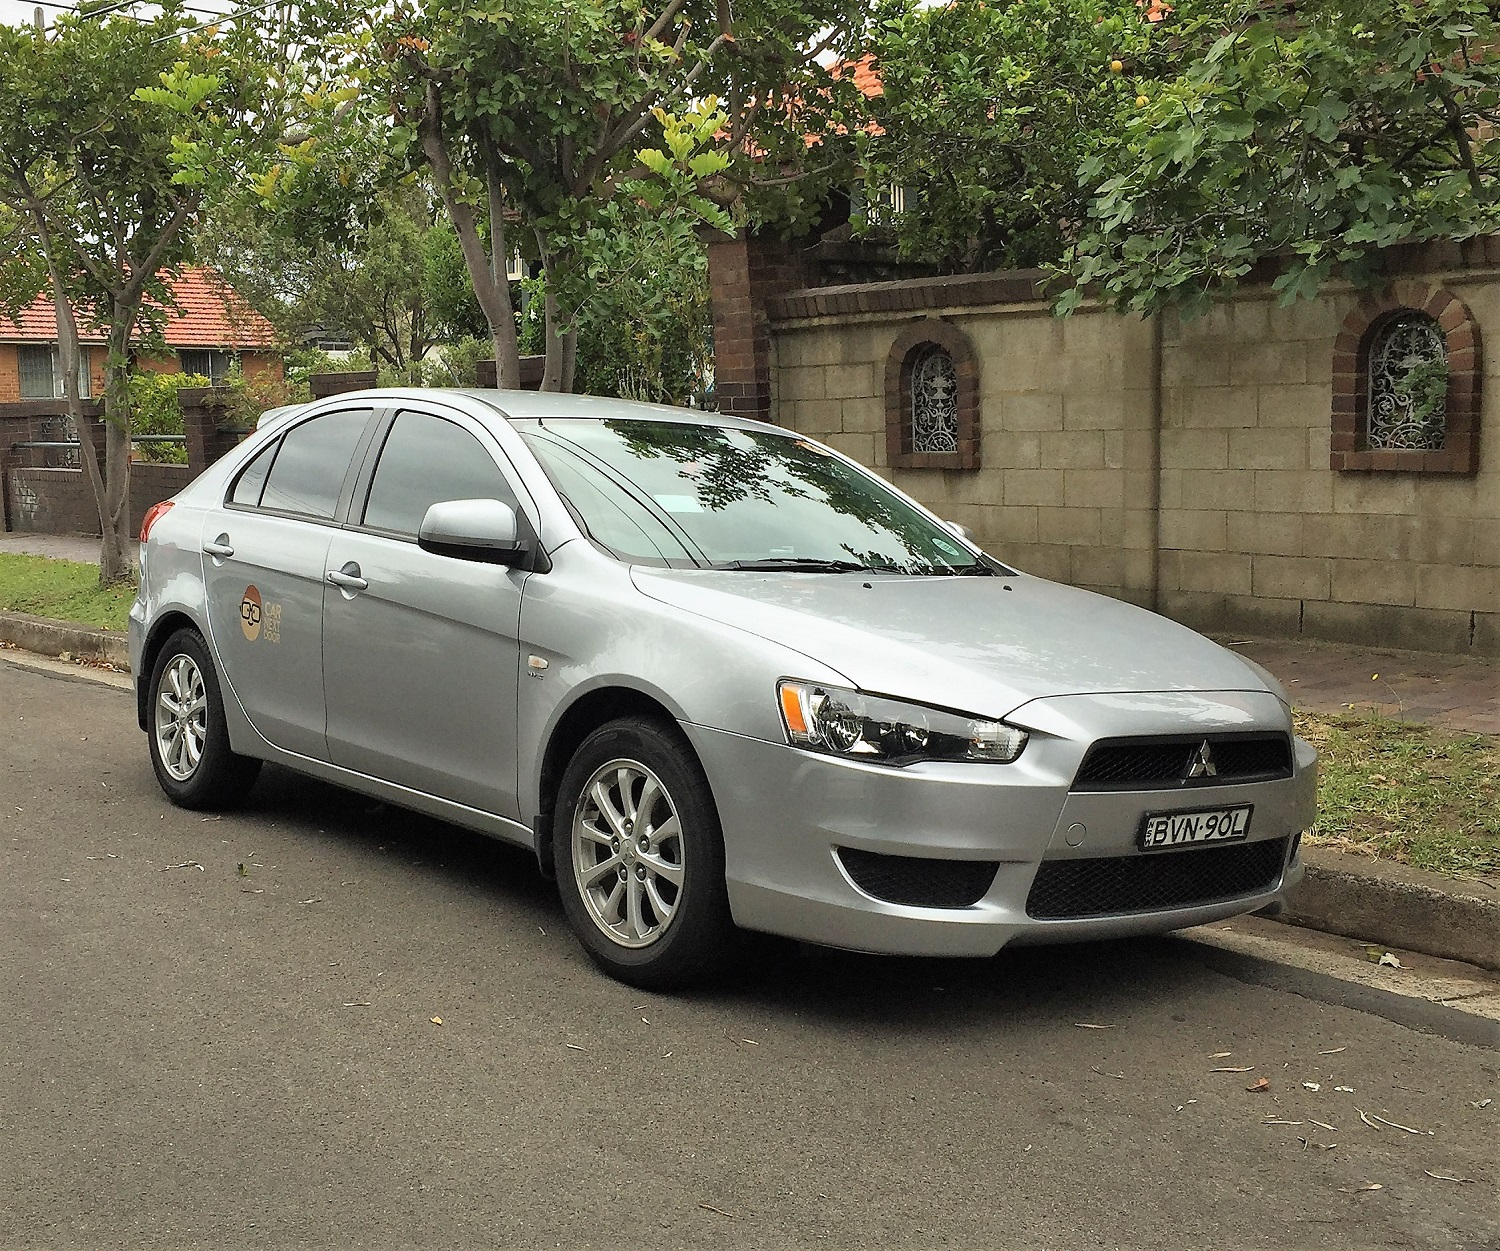 Picture of Paul's 2011 Mitsubishi Lancer